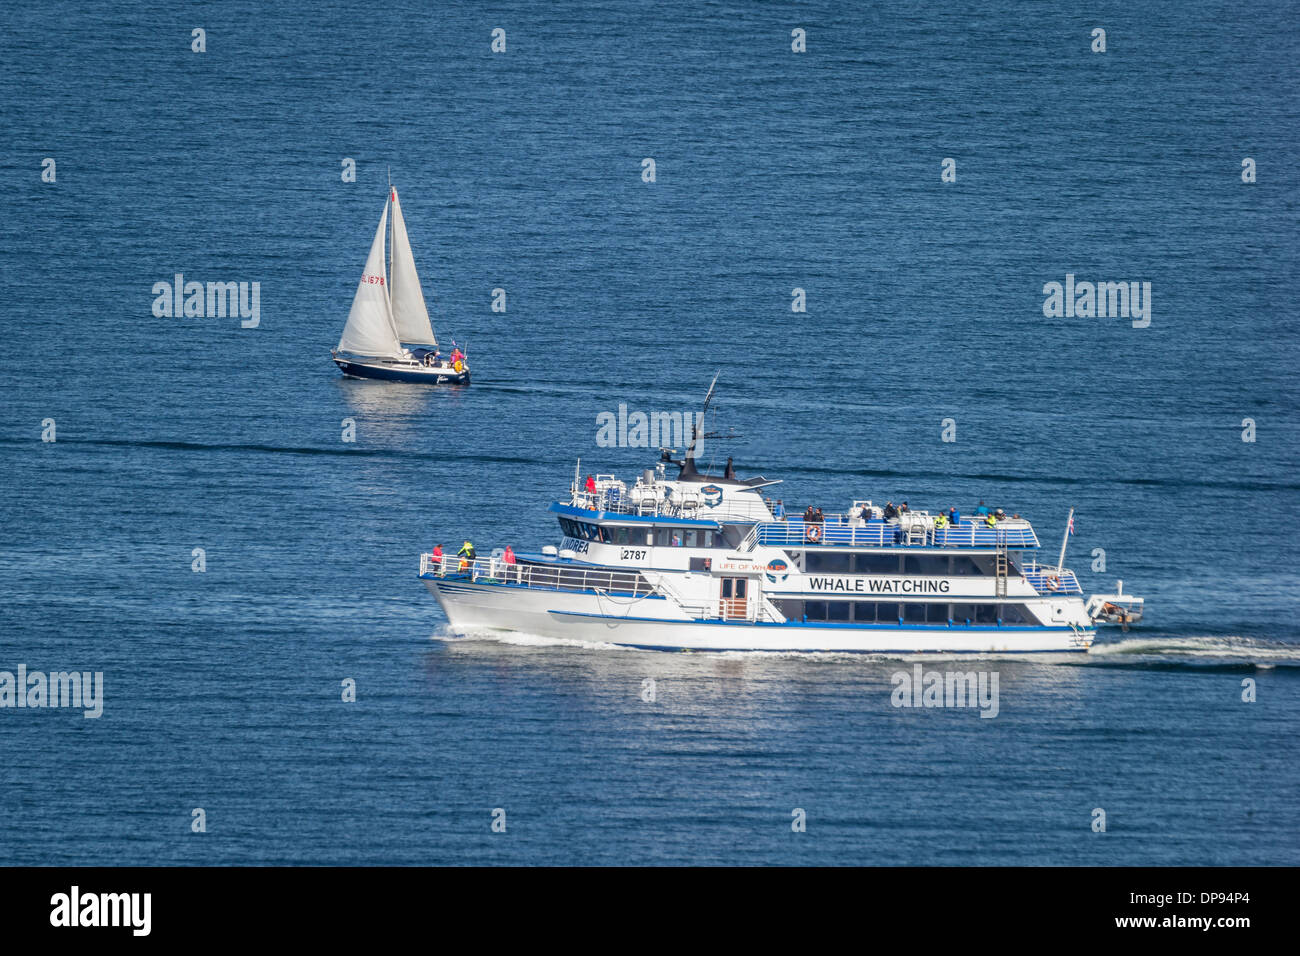 Tourist on Whale Watching boat and small sailboat, summertime, Reykjavik, Iceland - Stock Image